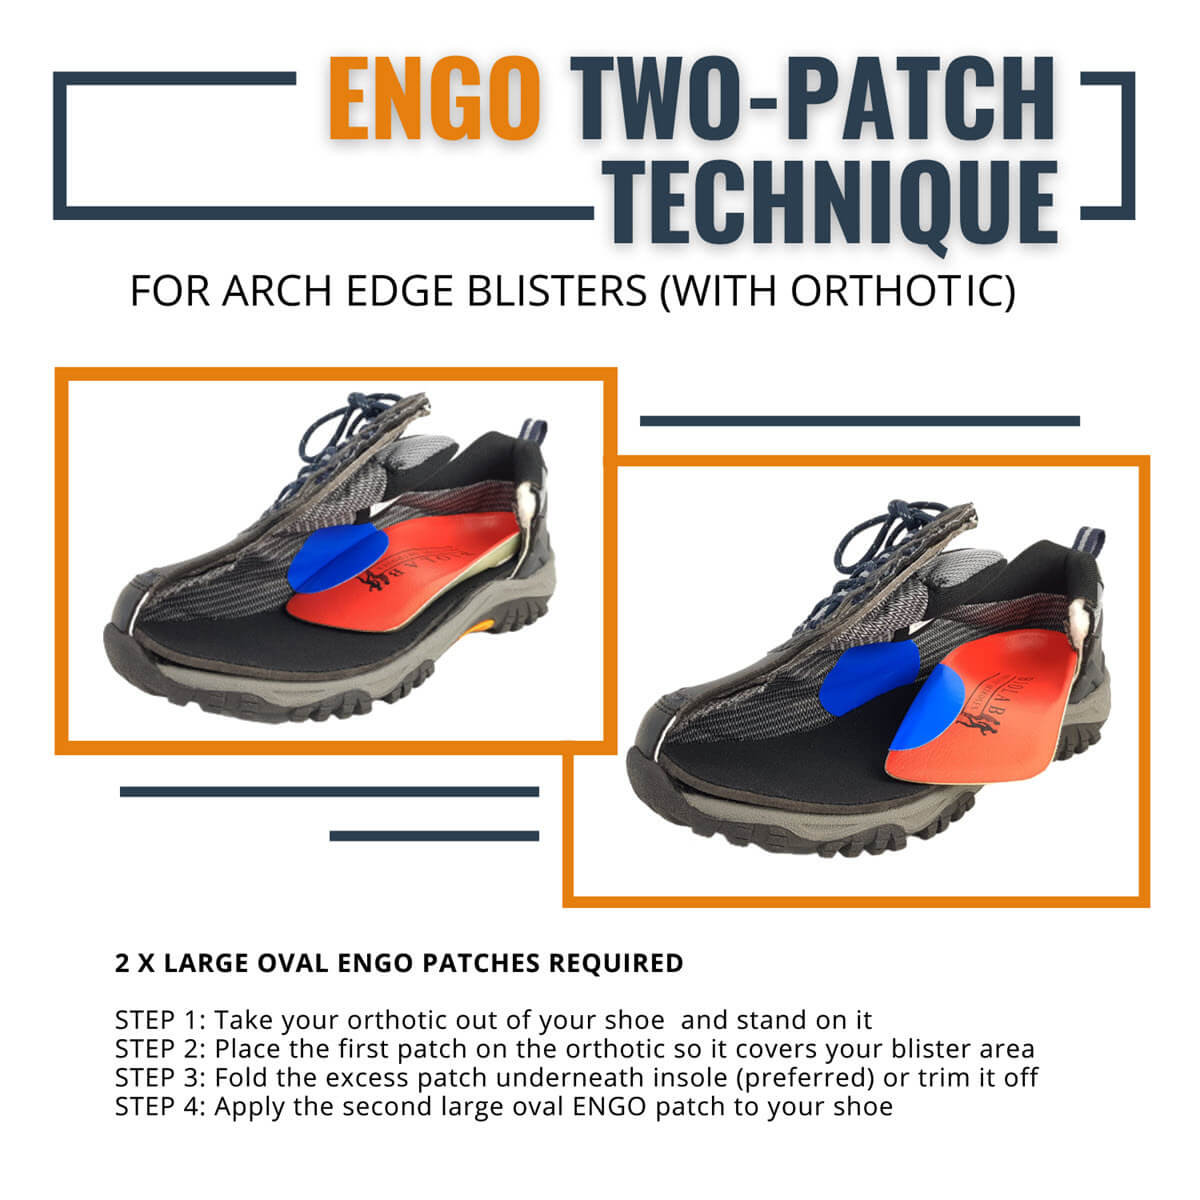 ENGO Blister Patches 4-Pack 6-Pack 30-Pack large oval patches using two patch technique for arch blisters with orthotics